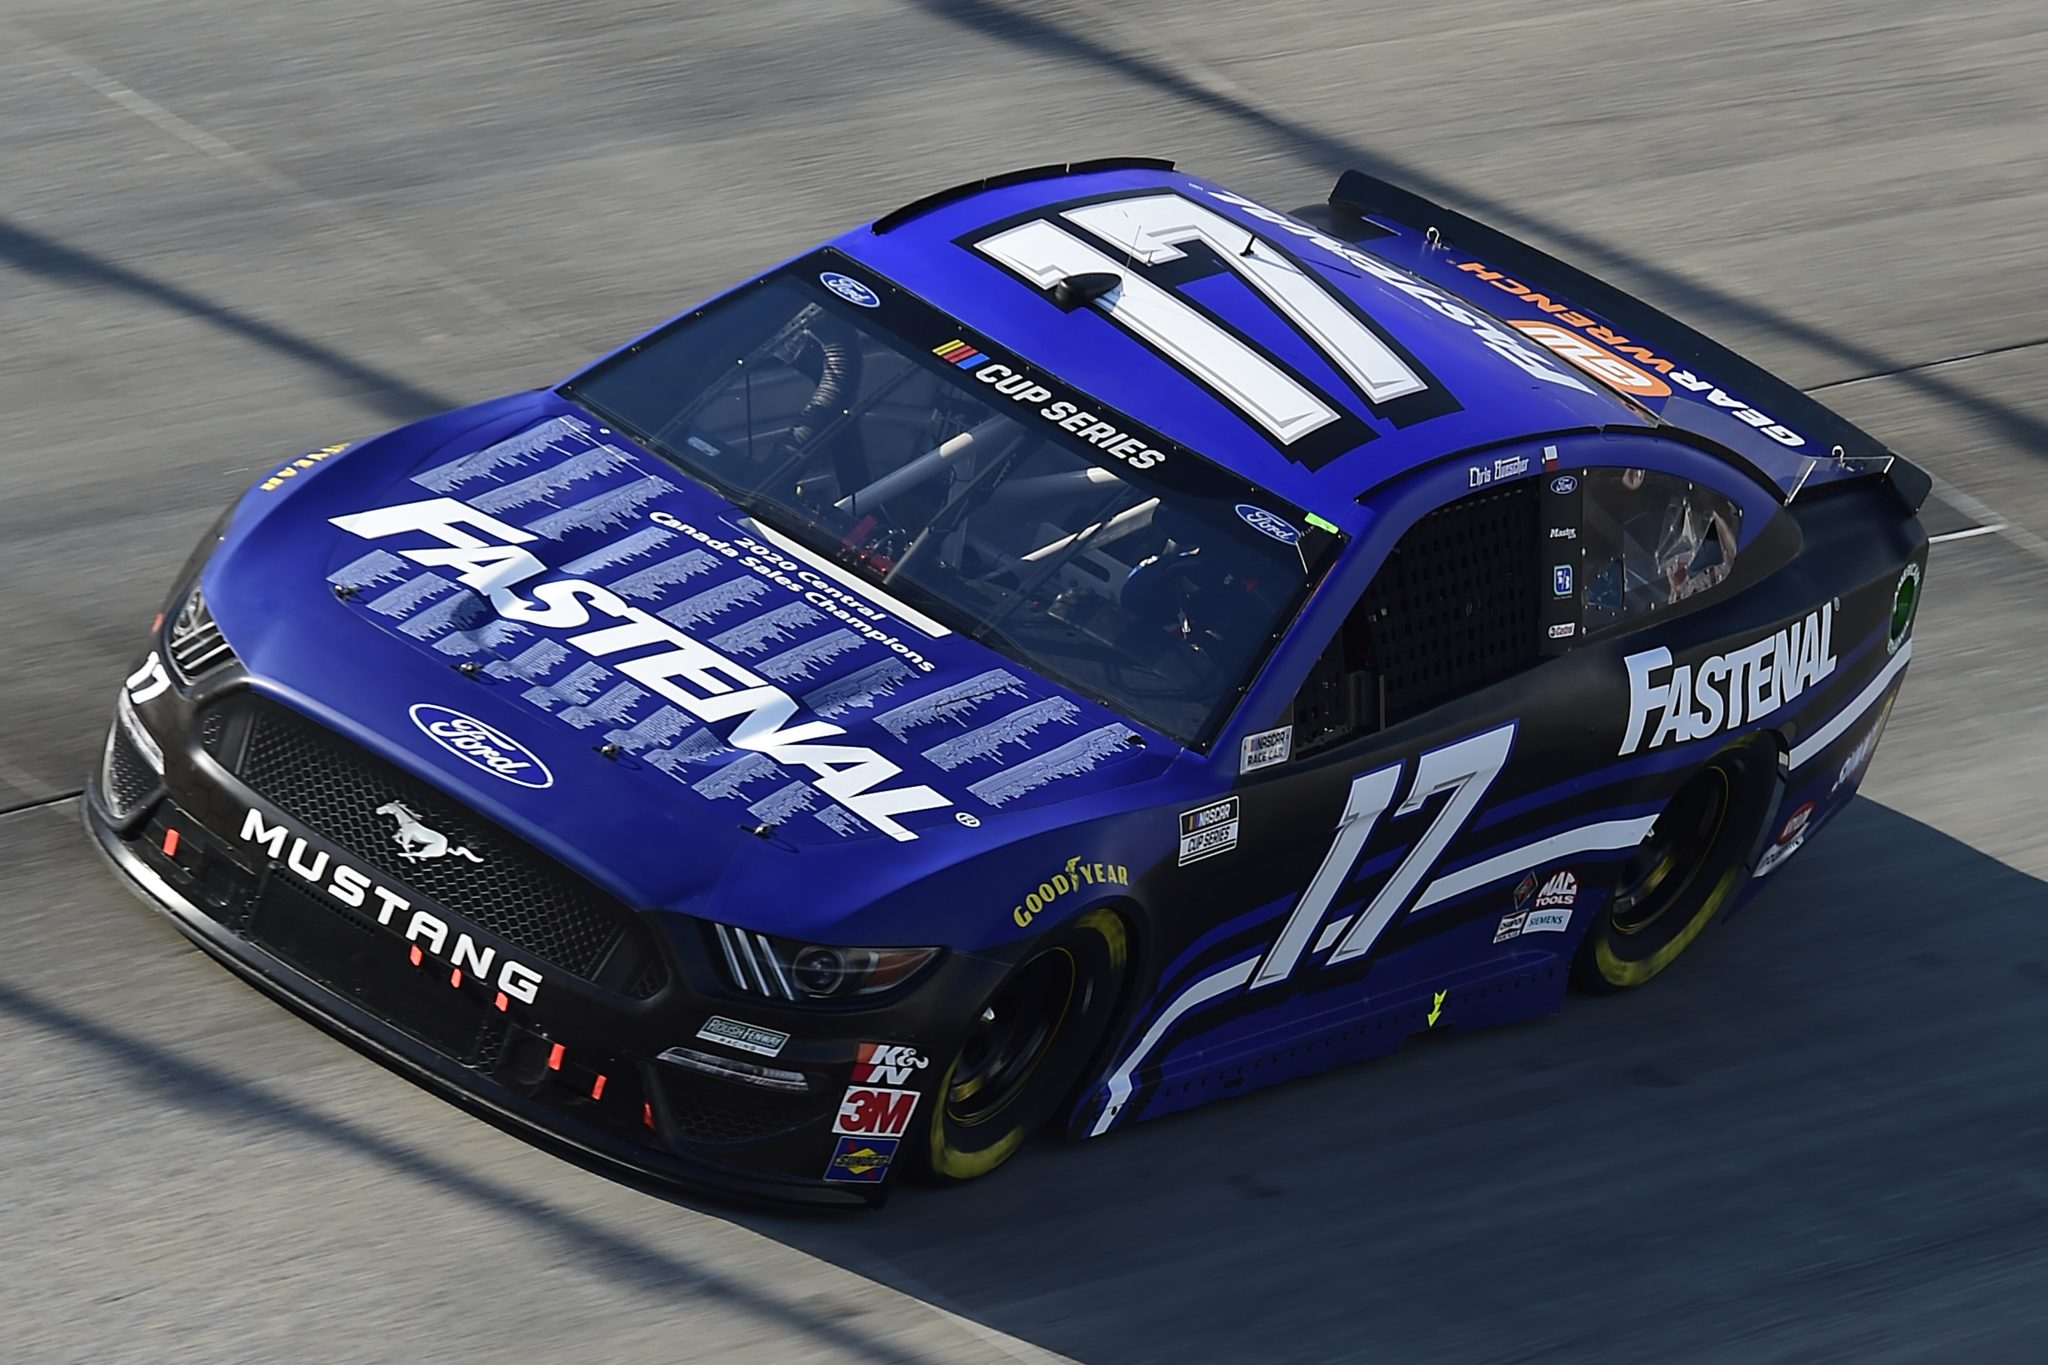 DOVER, DELAWARE - AUGUST 23: Chris Buescher, driver of the #17 Fastenal Ford, drives during the NASCAR Cup Series Drydene 311 at Dover International Speedway on August 23, 2020 in Dover, Delaware. (Photo by Jared C. Tilton/Getty Images) | Getty Images